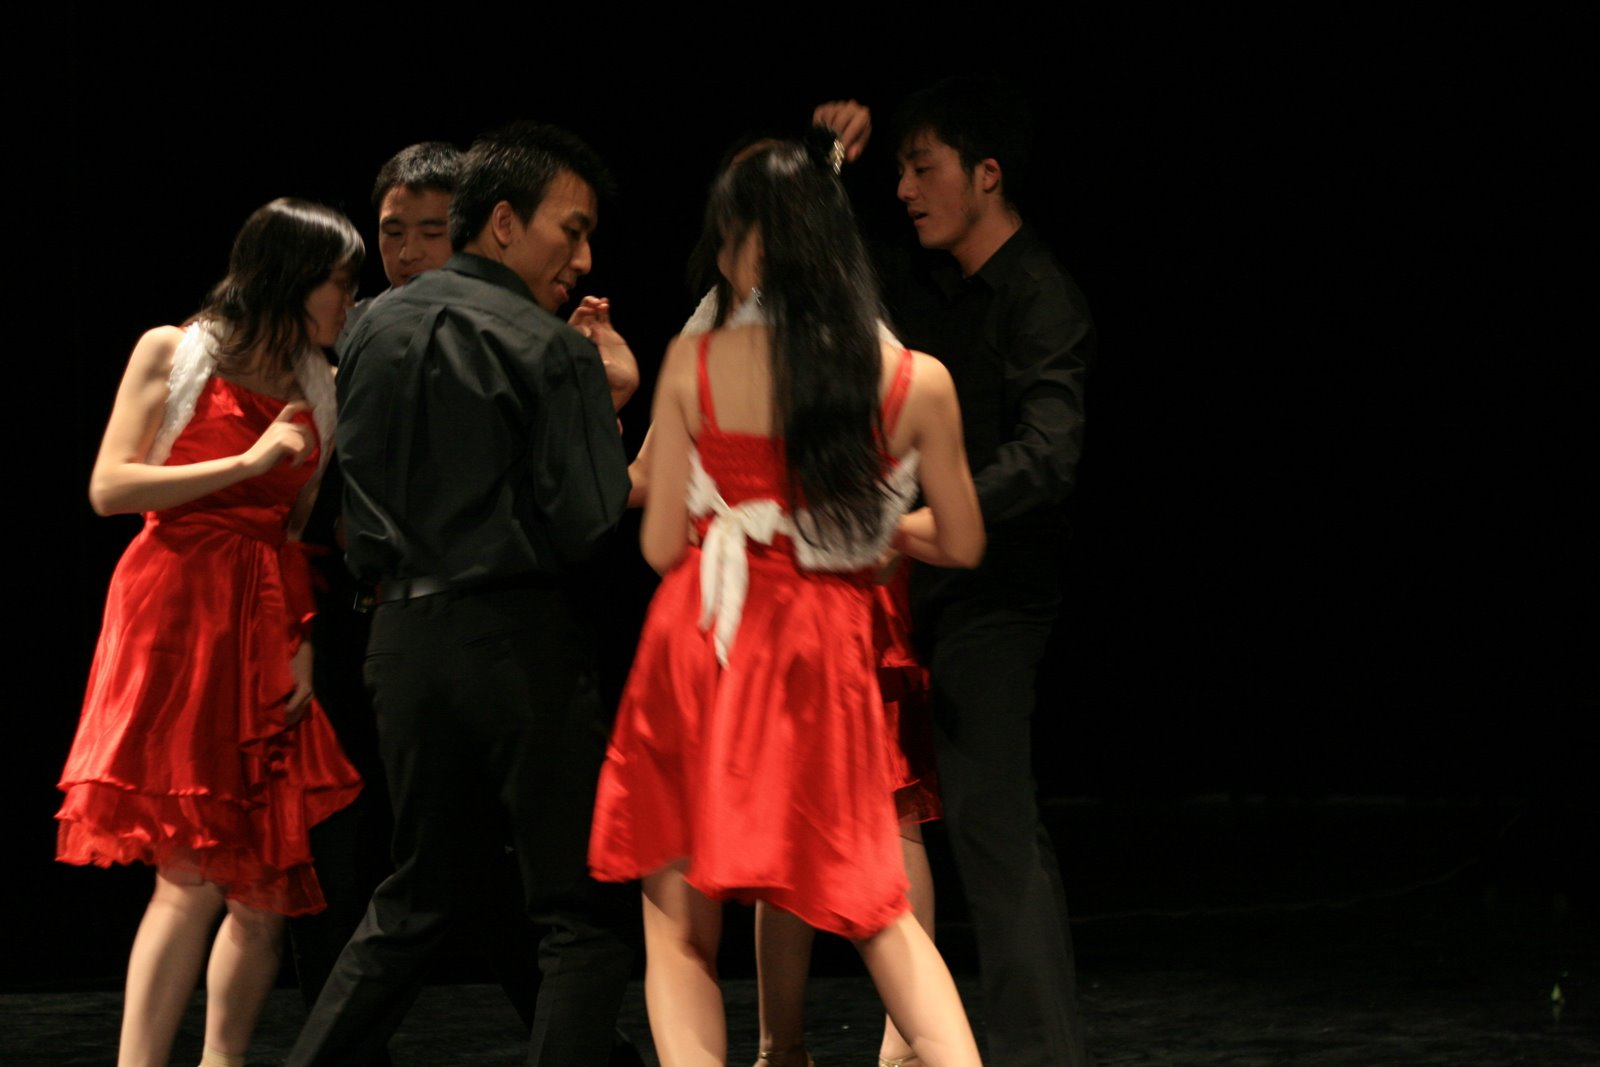 2008.12.20 performance in HKU